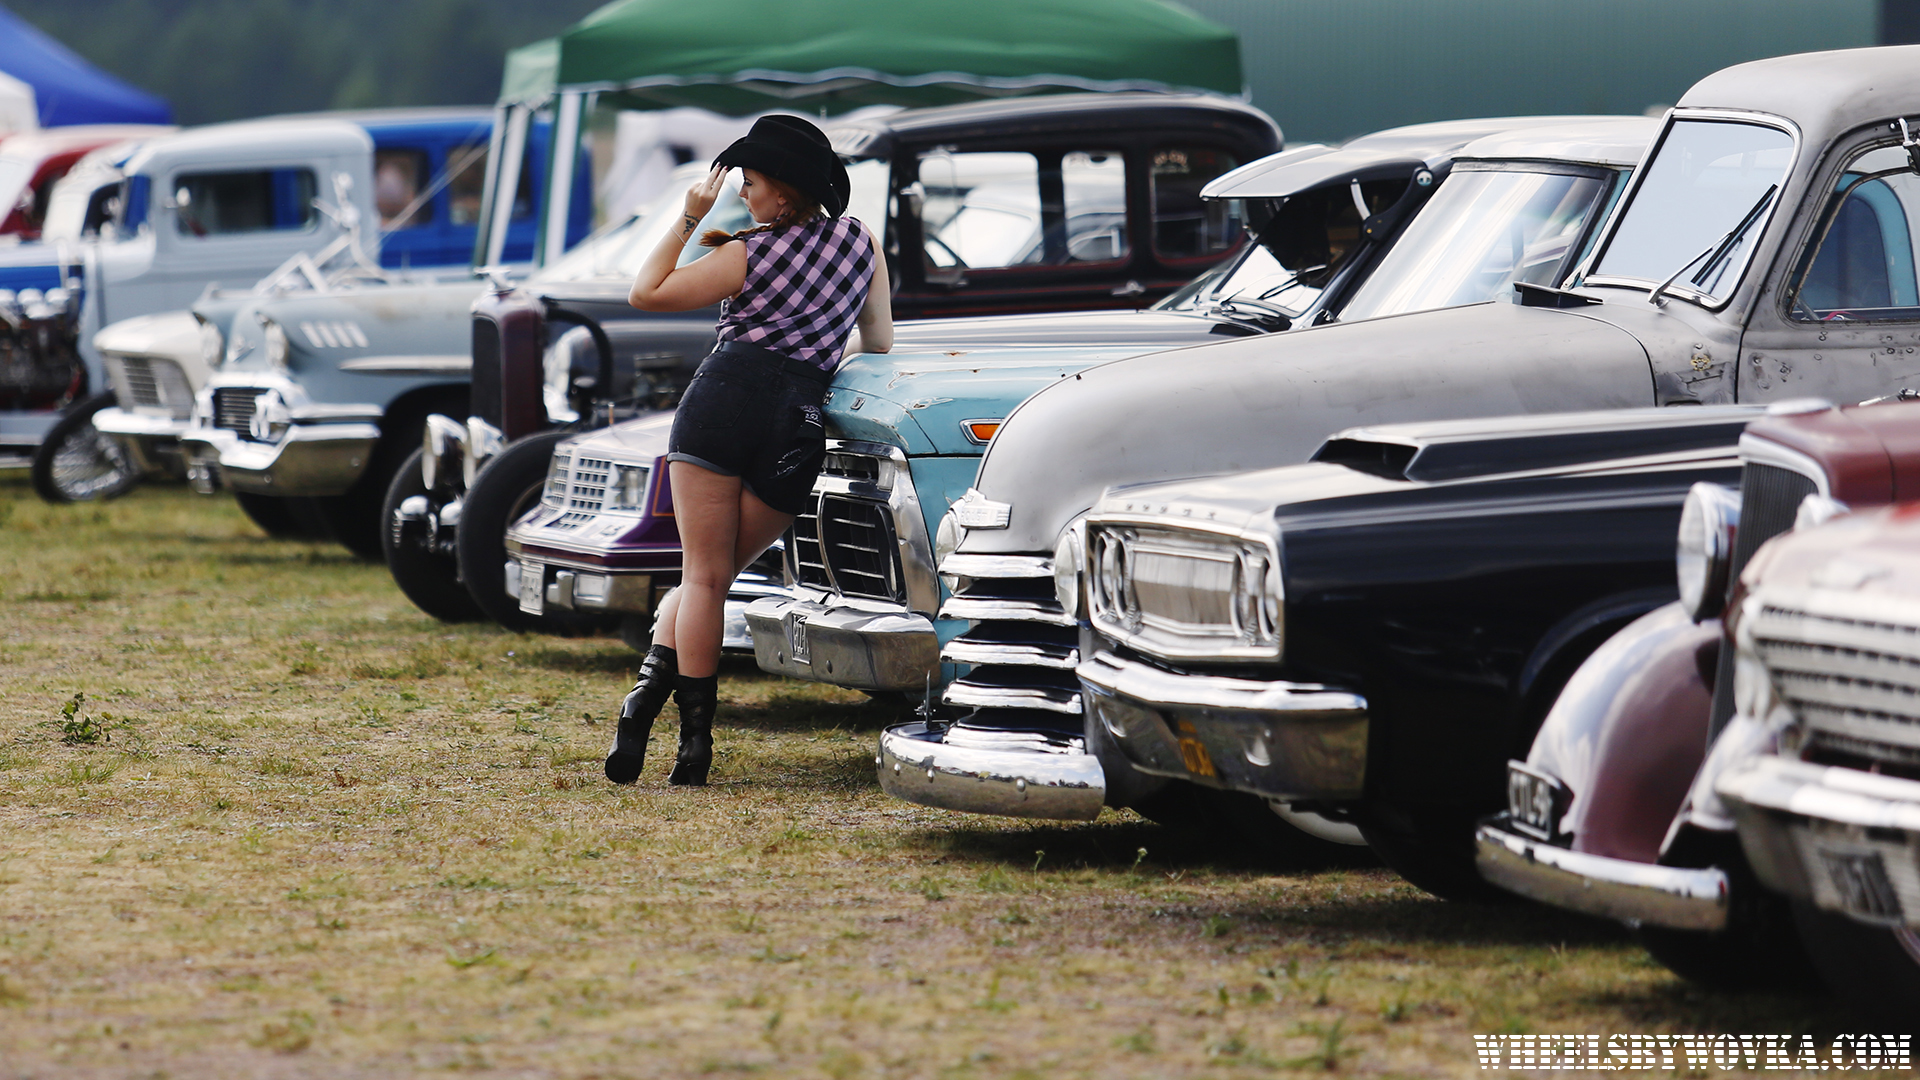 do-dads-vintage-drag-show-finland-by-wheelsbywovka-5